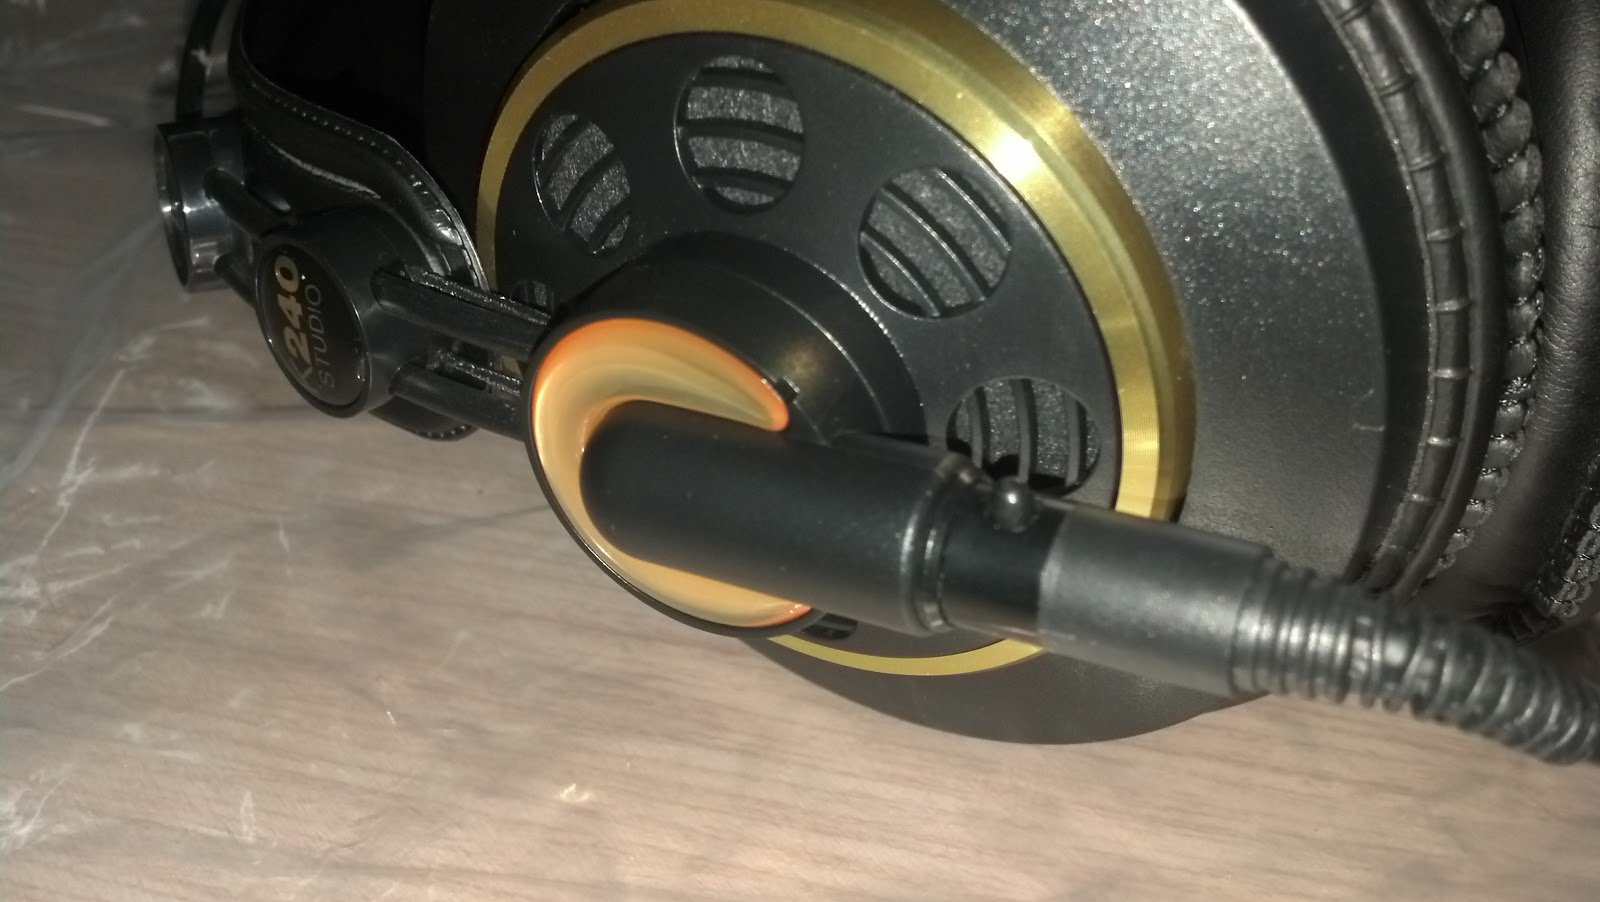 how to tell if akg k240 is made in china